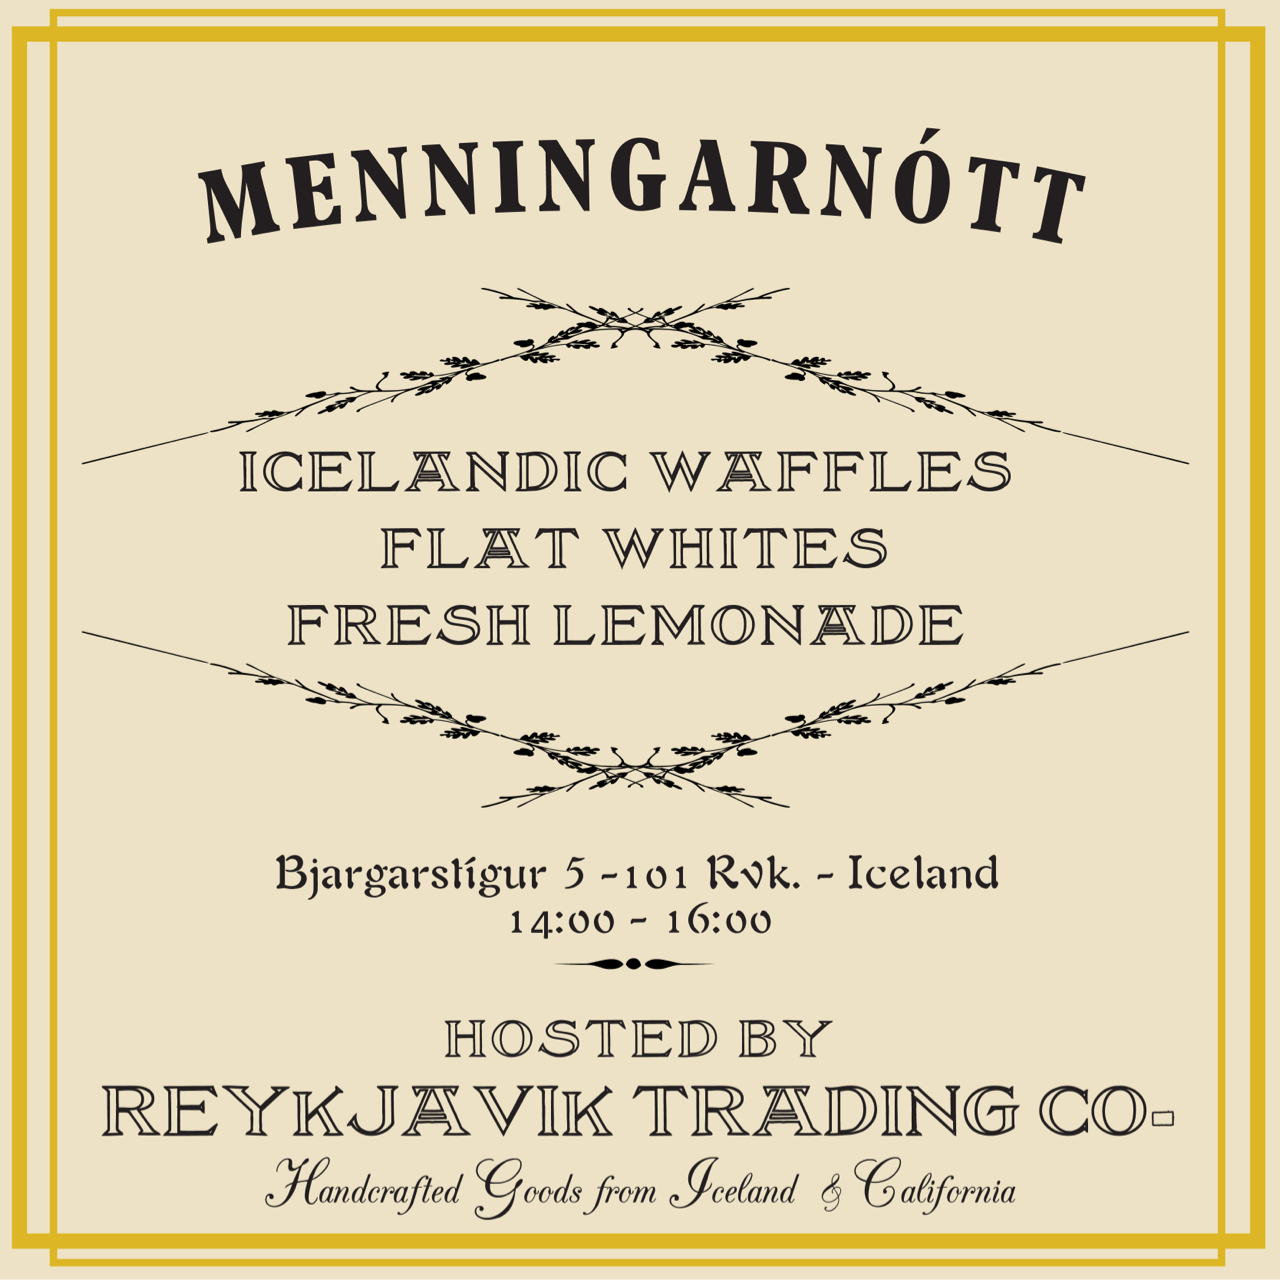 Join us tomorrow in our neighborhood for Menningarnótt as we open up our live / workspace & preview new goods